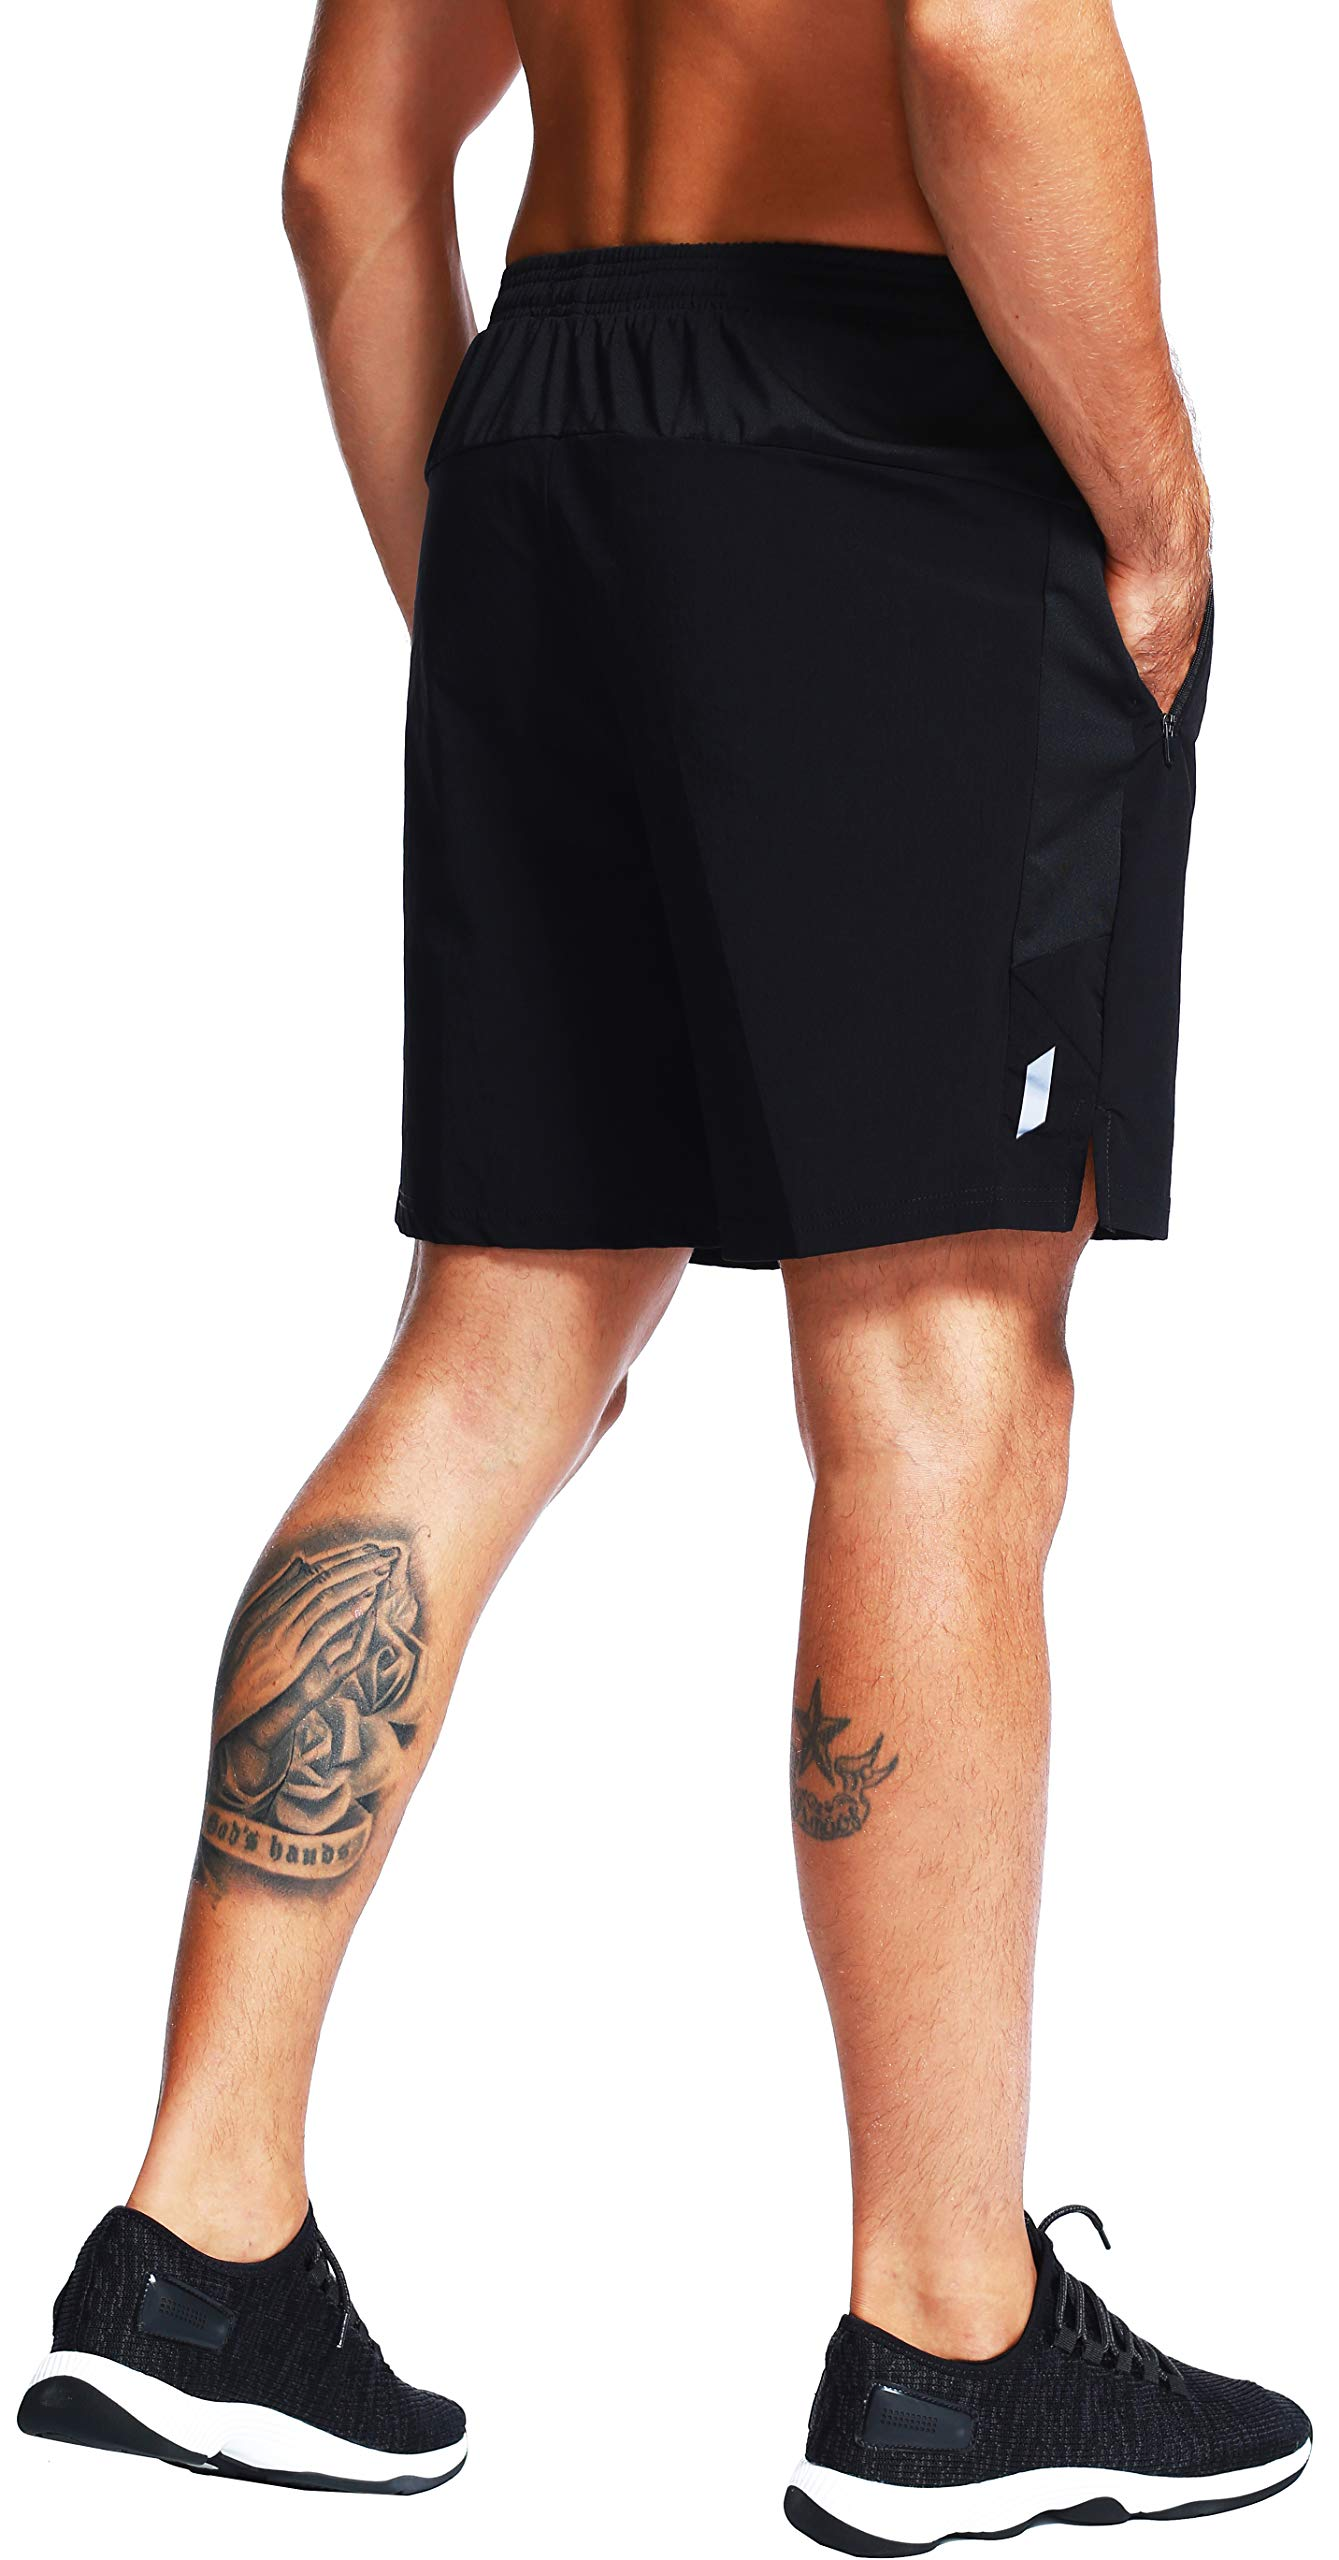 """Akilex Men's 7"""" Quick Dry Woven Shorts for Outdoor Athletic Running Workout Training Lightweight Breathable Zipper Pockets"""